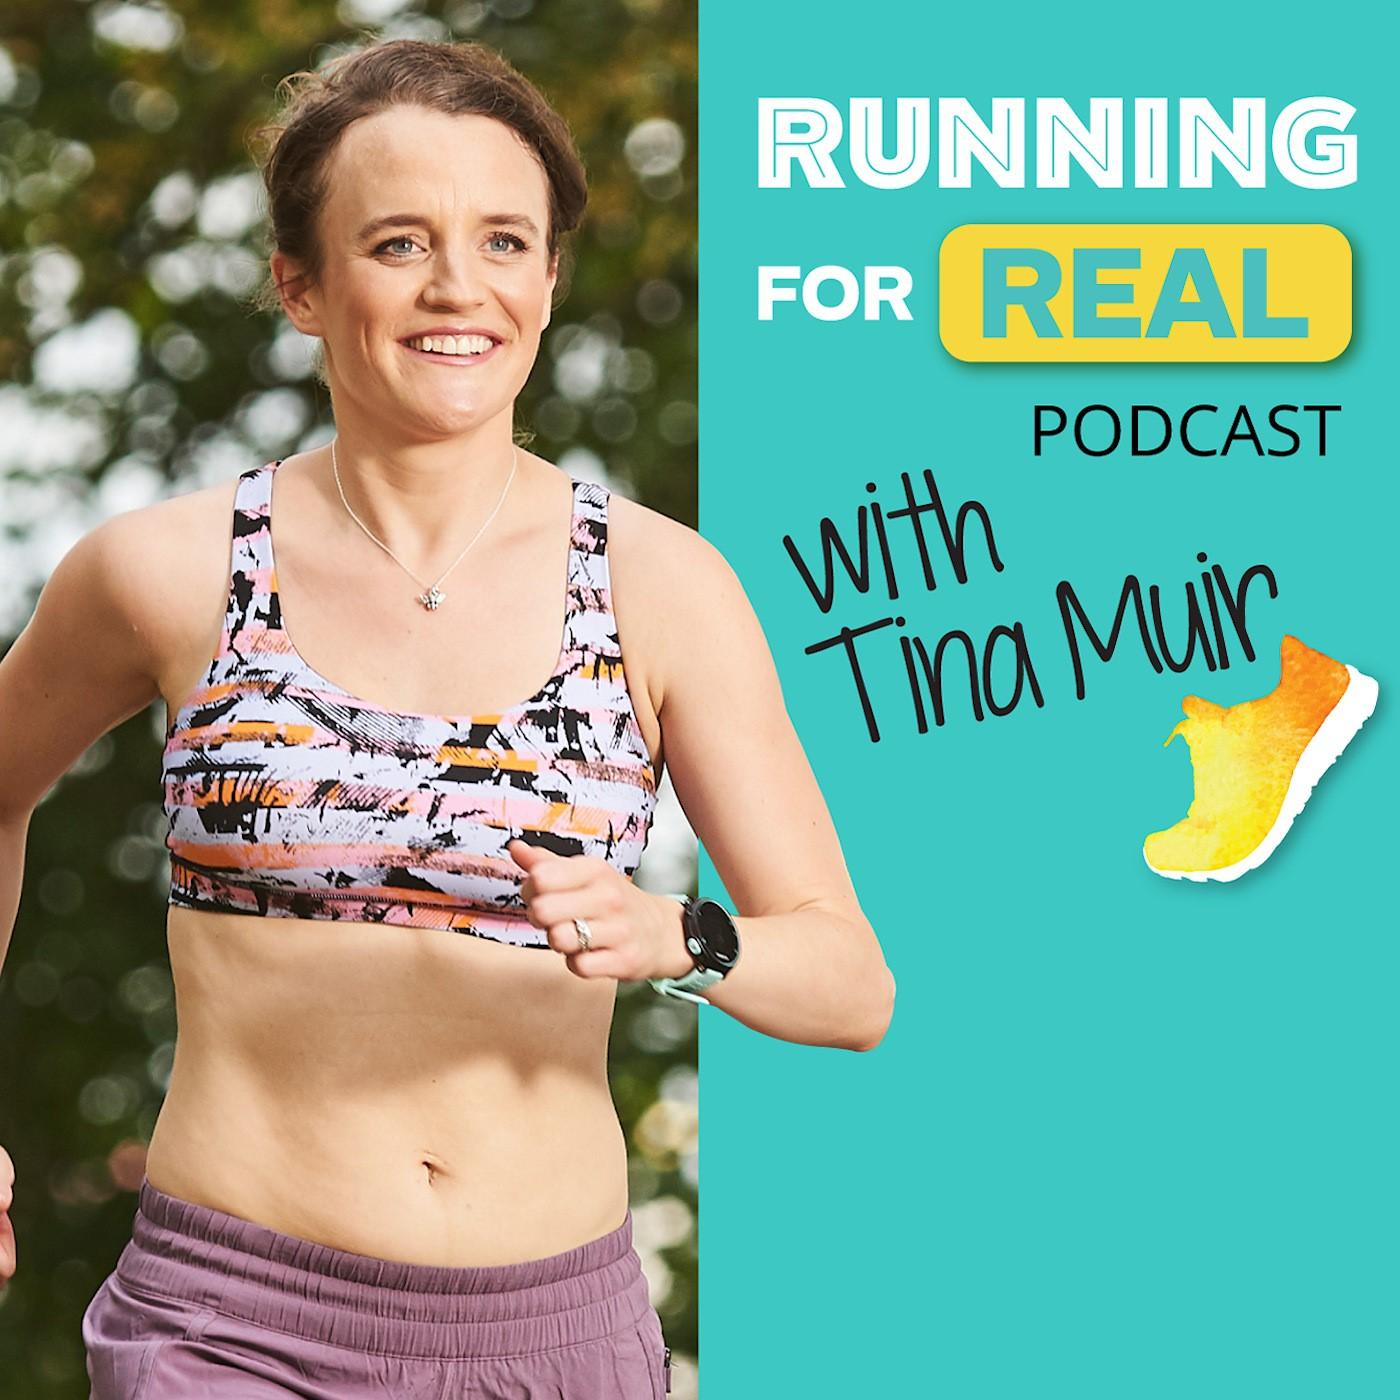 Beyond Running: Miscarriage and Loss with Heidi Greenwood -R4R 147